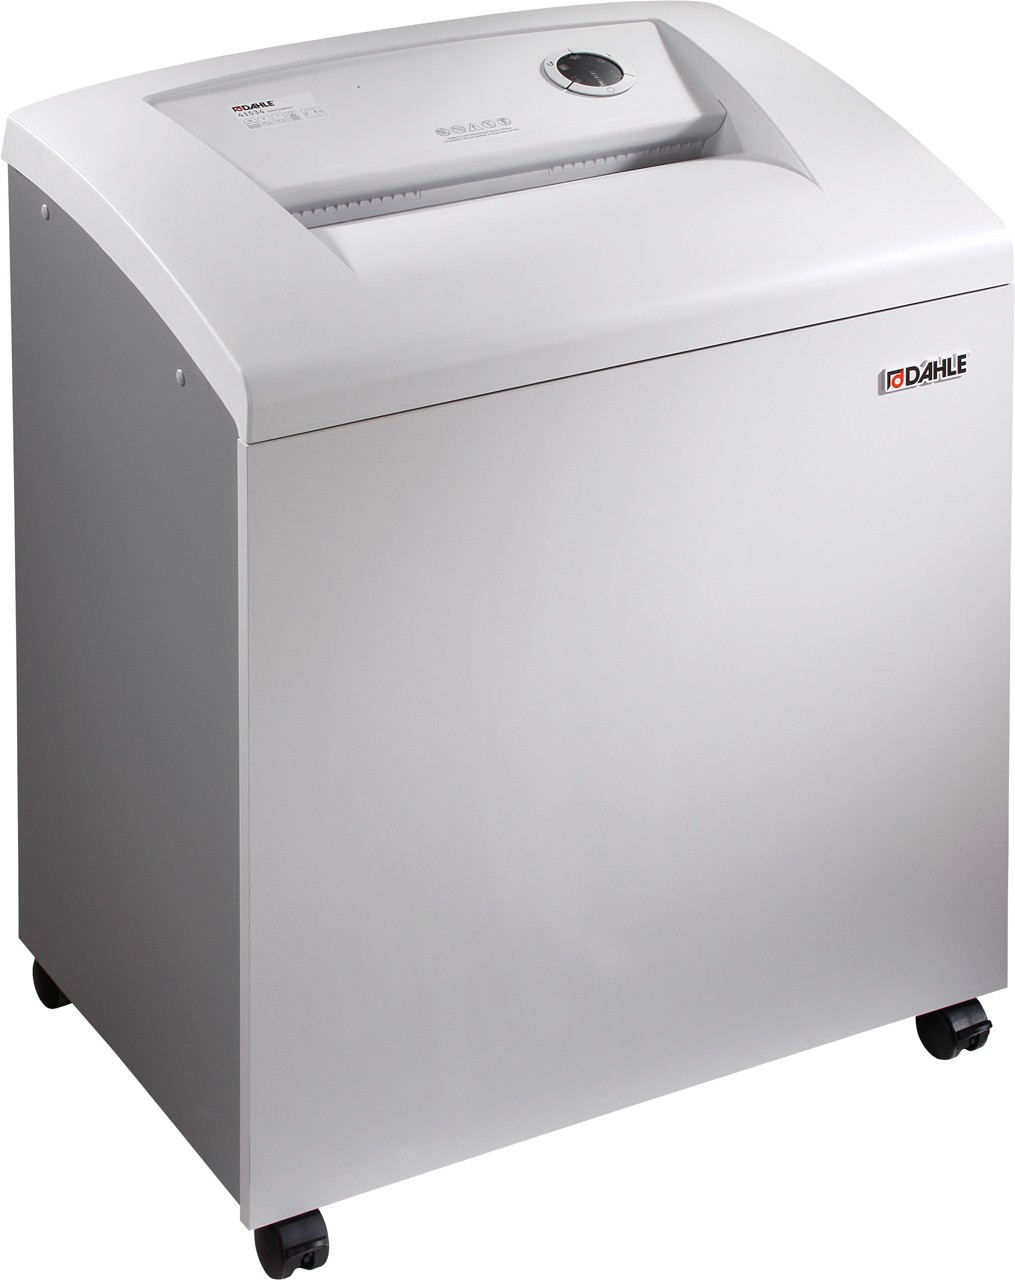 41522 CleanTEC Department Shredder + CD and DVD Shredding